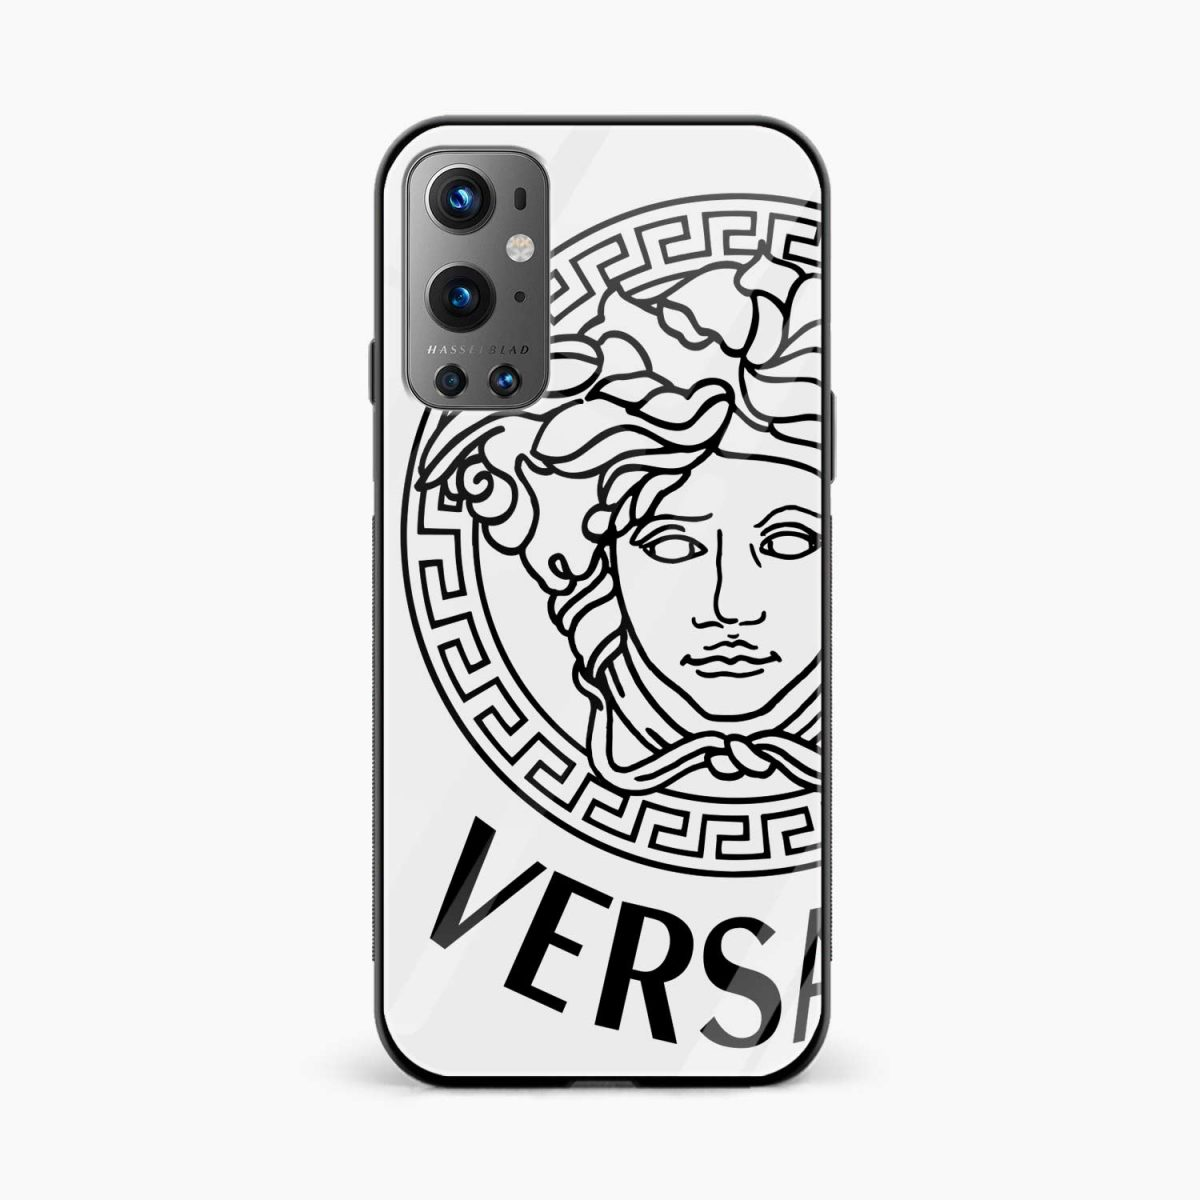 versace black white front view oneplus 9 pro back cover